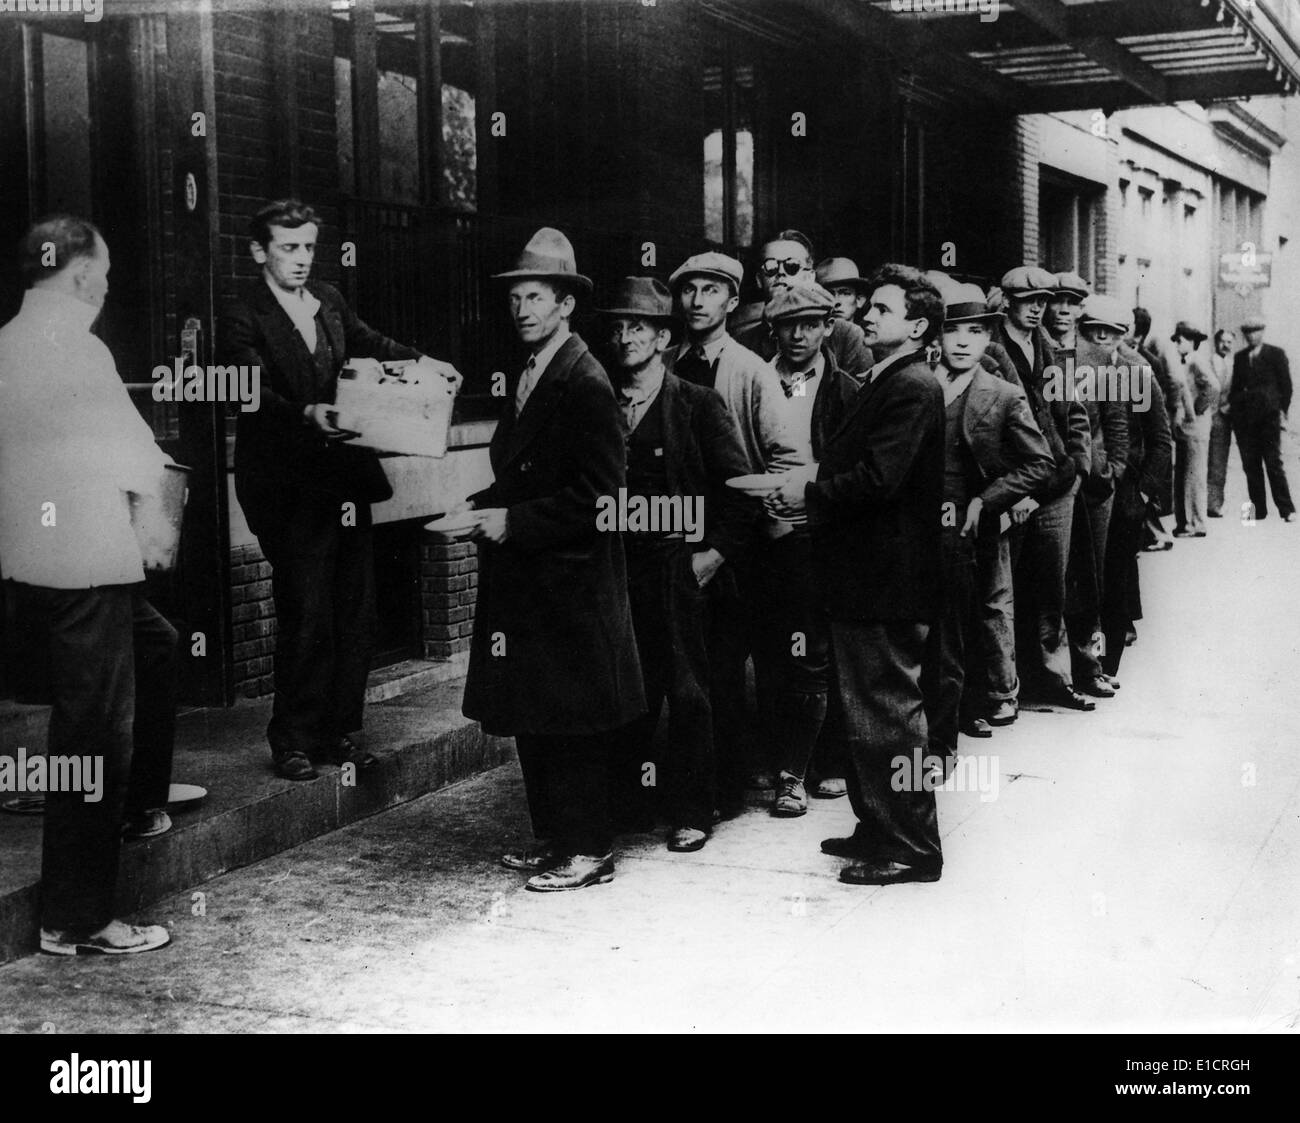 The Great Depression. Men line up for free bread and soup. 1932 - Stock Image